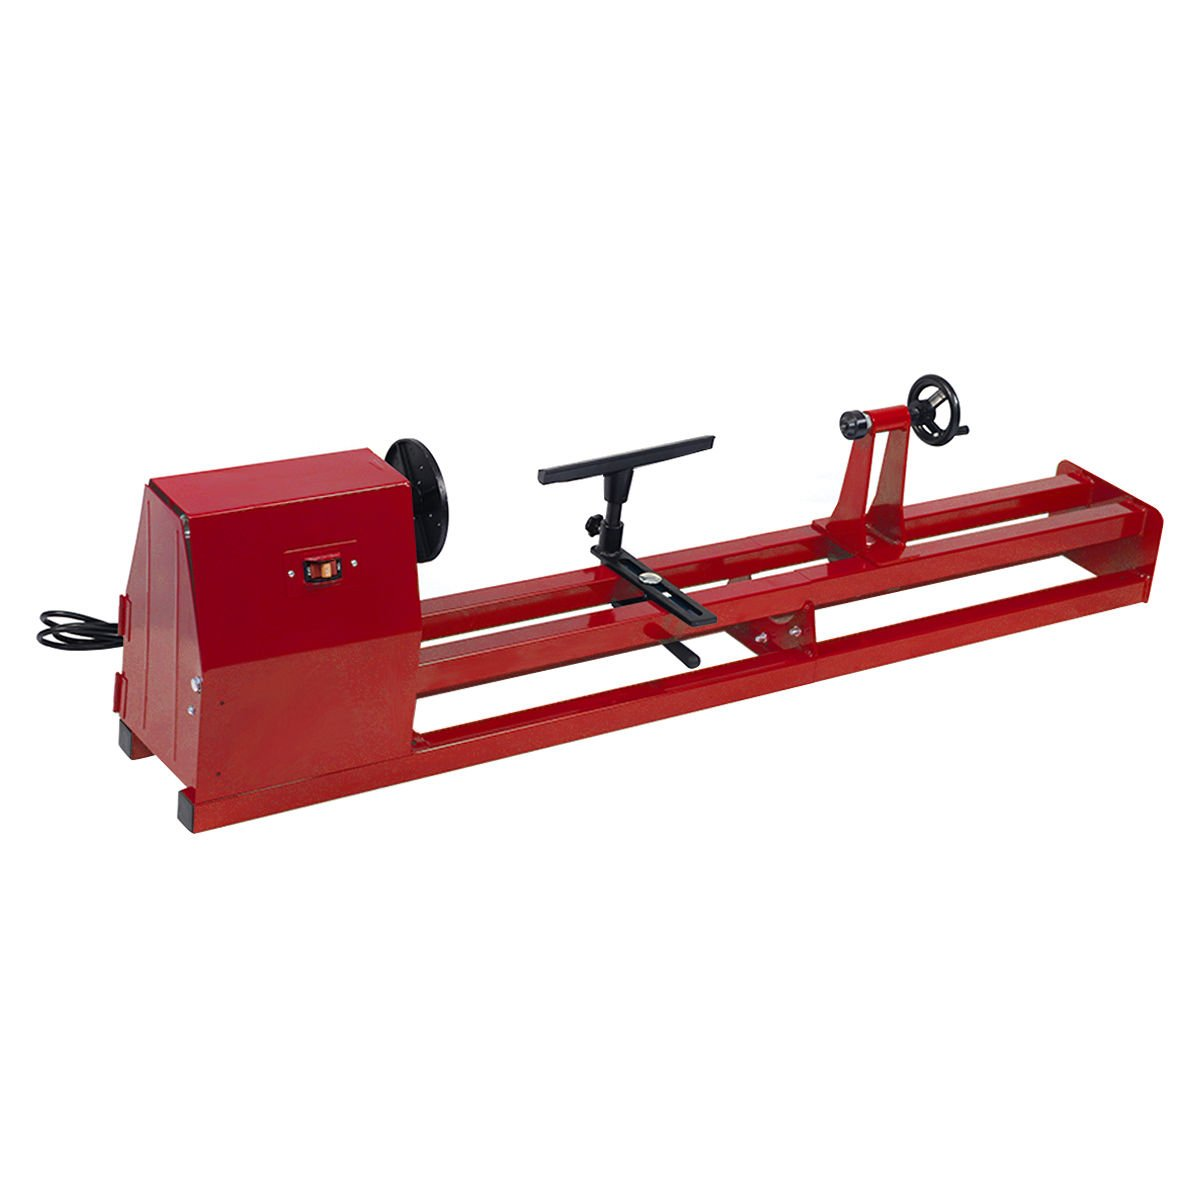 Goplus 1/2HP 4 Speed 40'' Power Wood Turning Lathe 14'' x 40''